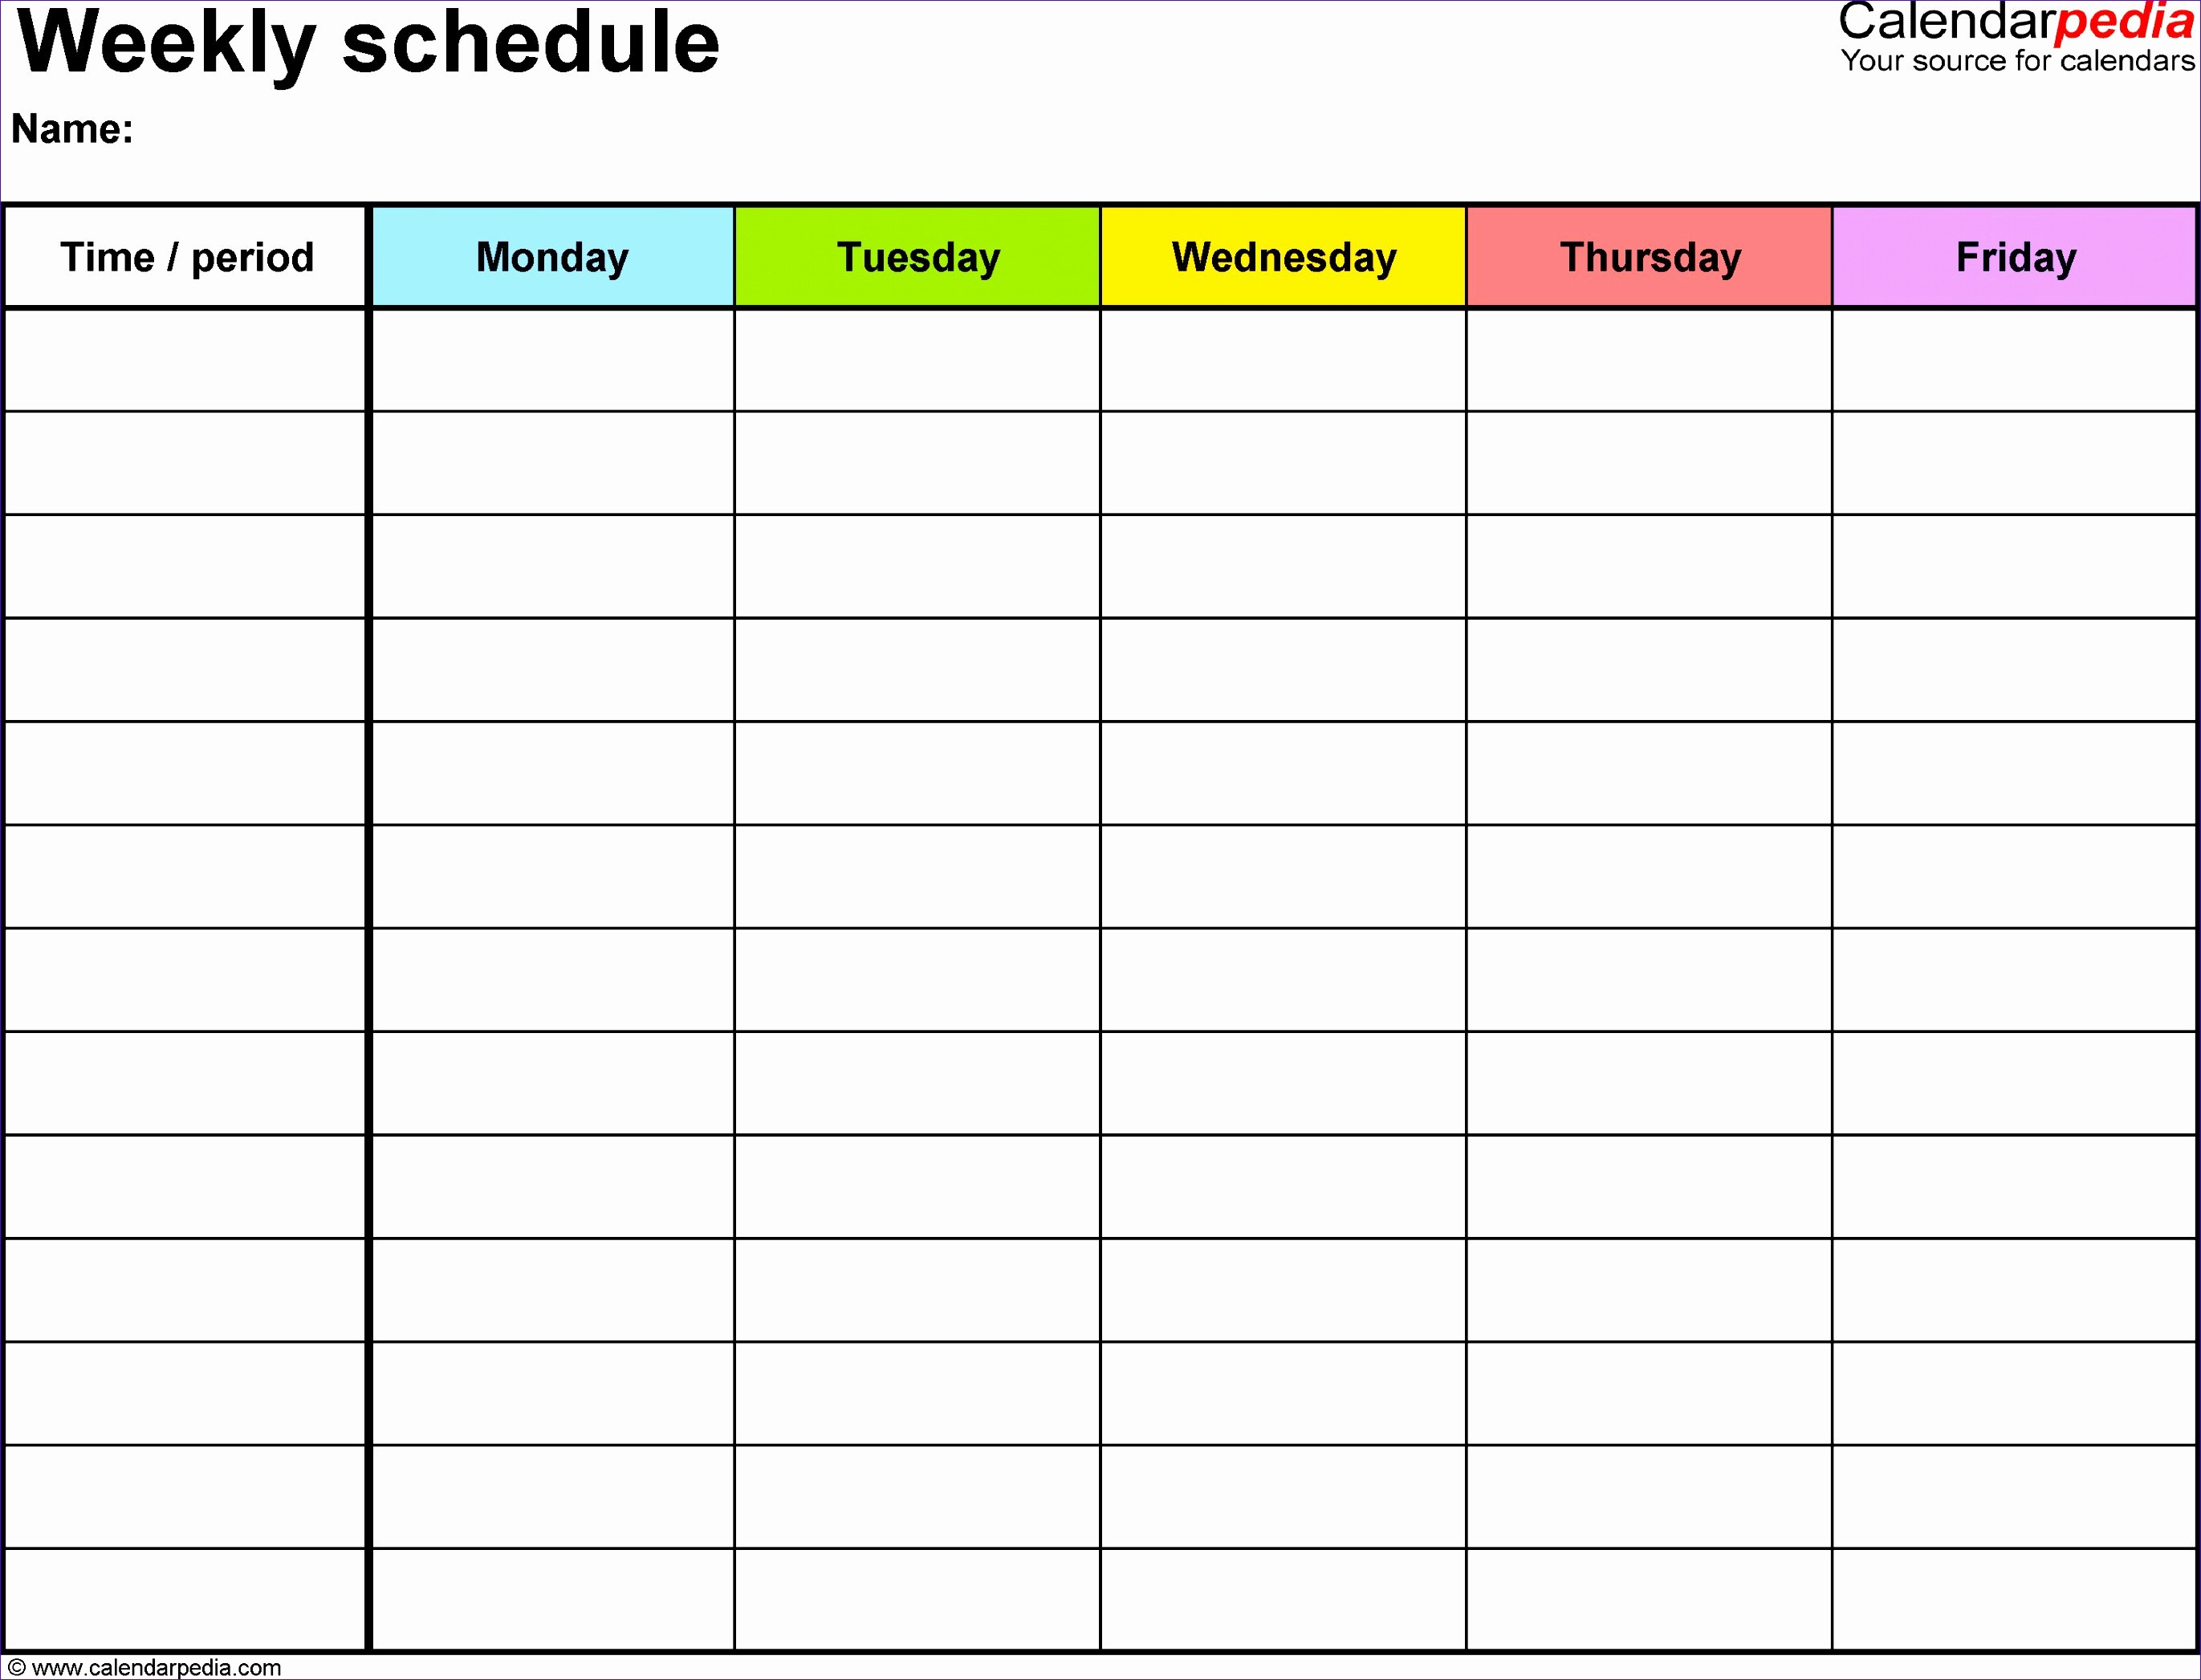 On Call Schedule Template Excel Lovely 9 Call Schedule Template Excel Exceltemplates